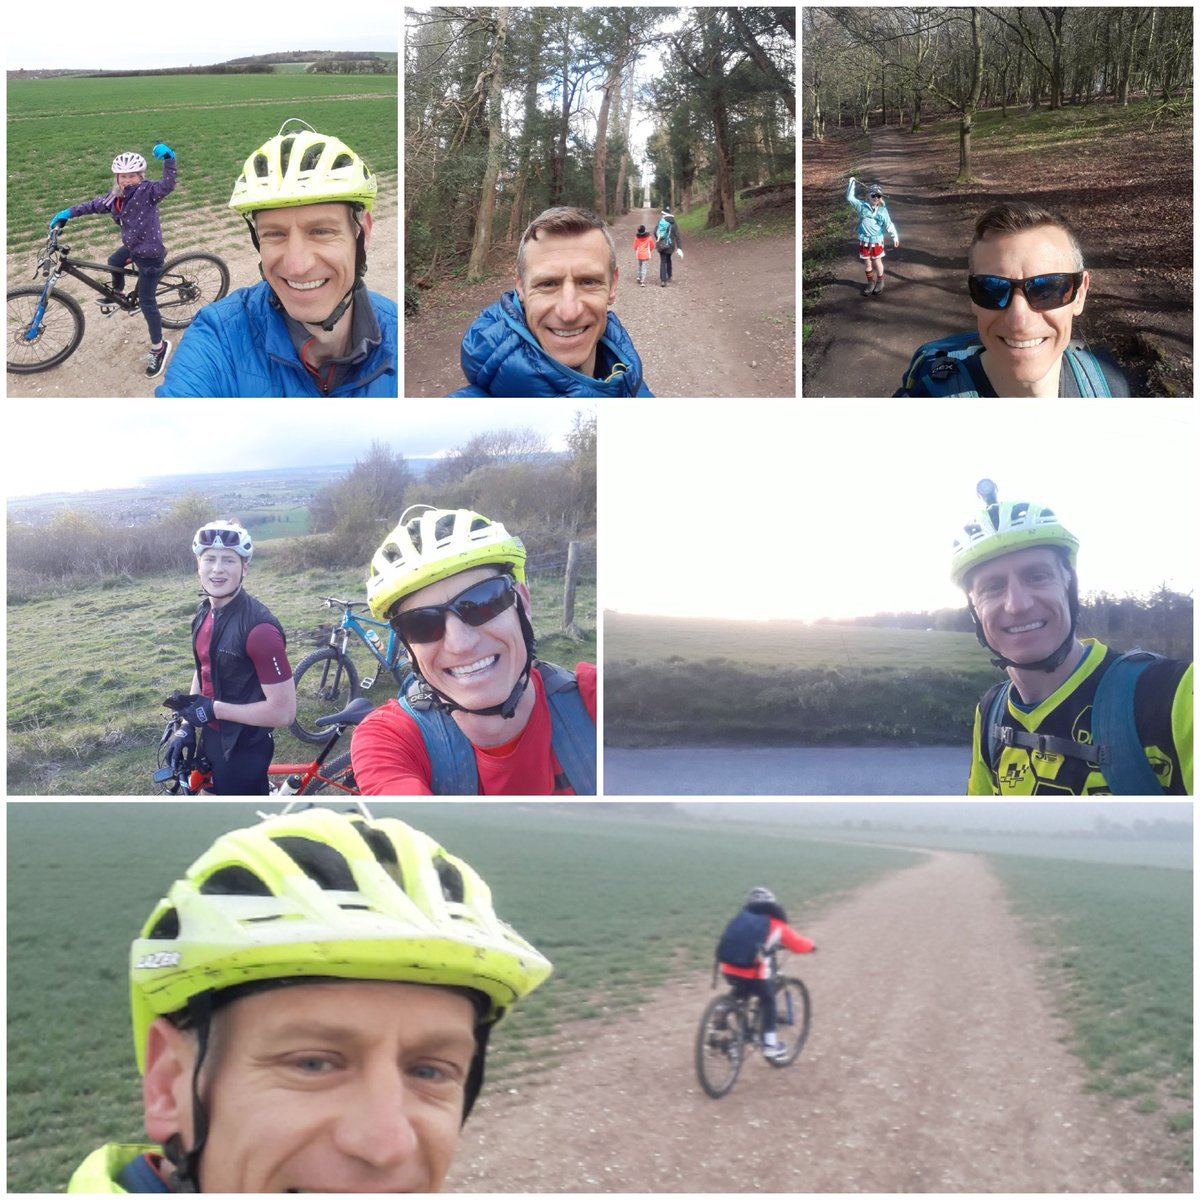 It's been a while so here is a collage of recent activities. Walking in Ashridge and Tring, biking to school, new bike test for youngest, tough ride with nephew, night rides. #GetOutside #Lutonoutdoors #activebedfordshire @ActiveLuton @teamBEDS @OSleisure